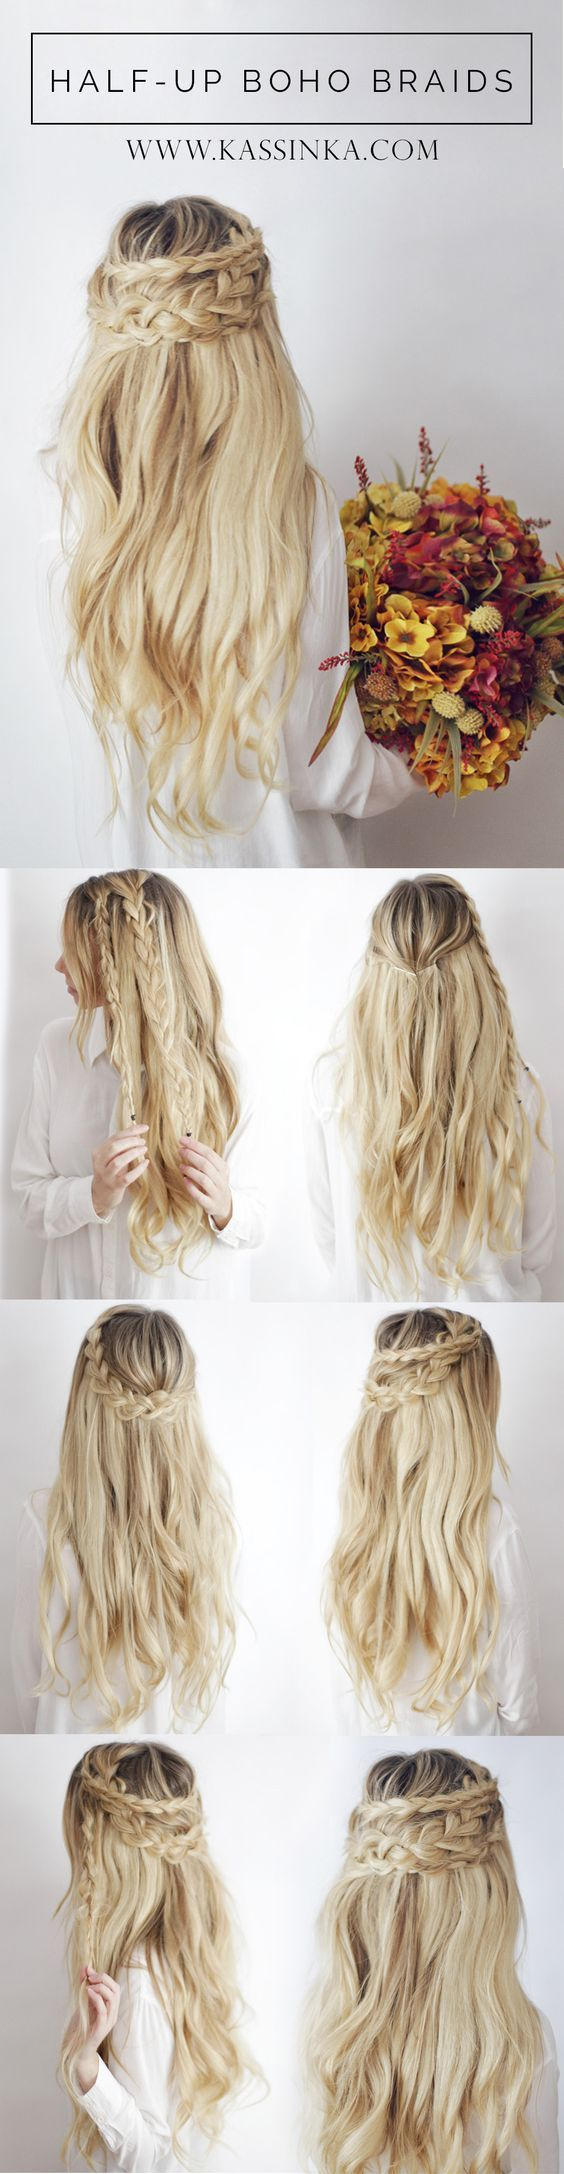 Enjoyable 1000 Ideas About Easy Braided Hairstyles On Pinterest Types Of Short Hairstyles Gunalazisus